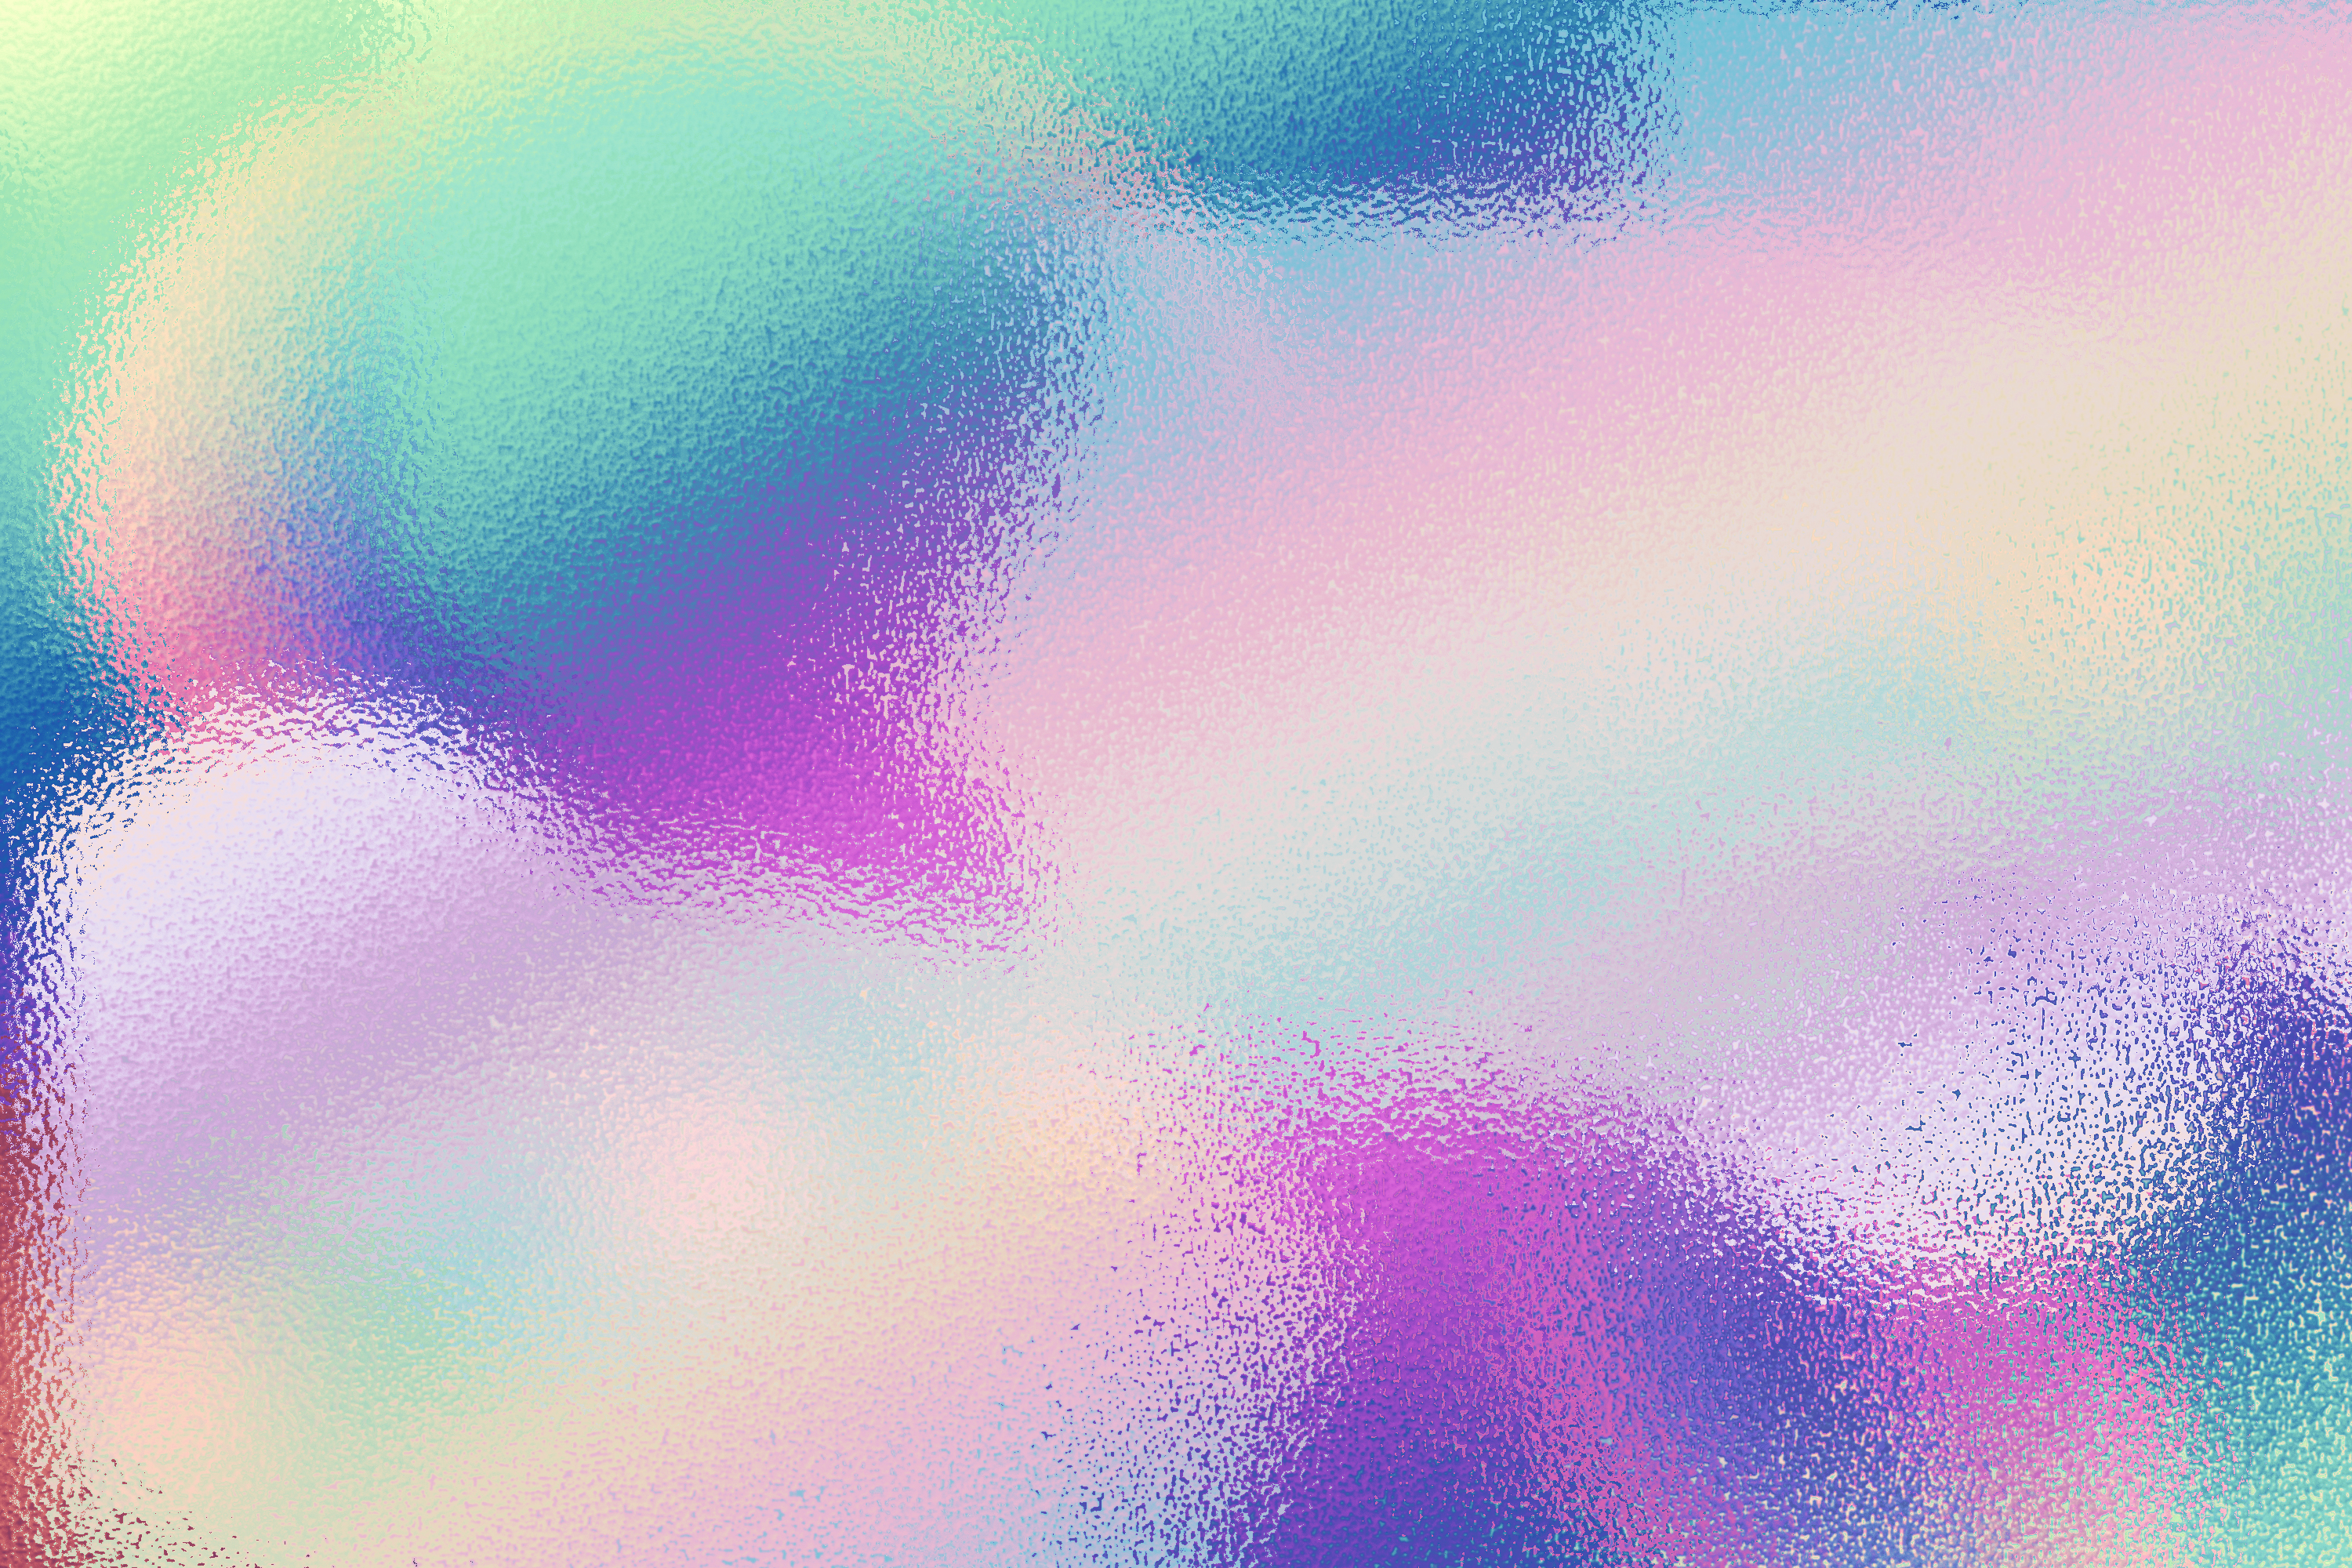 Holographic - 15 Backgrounds Pack example image 2